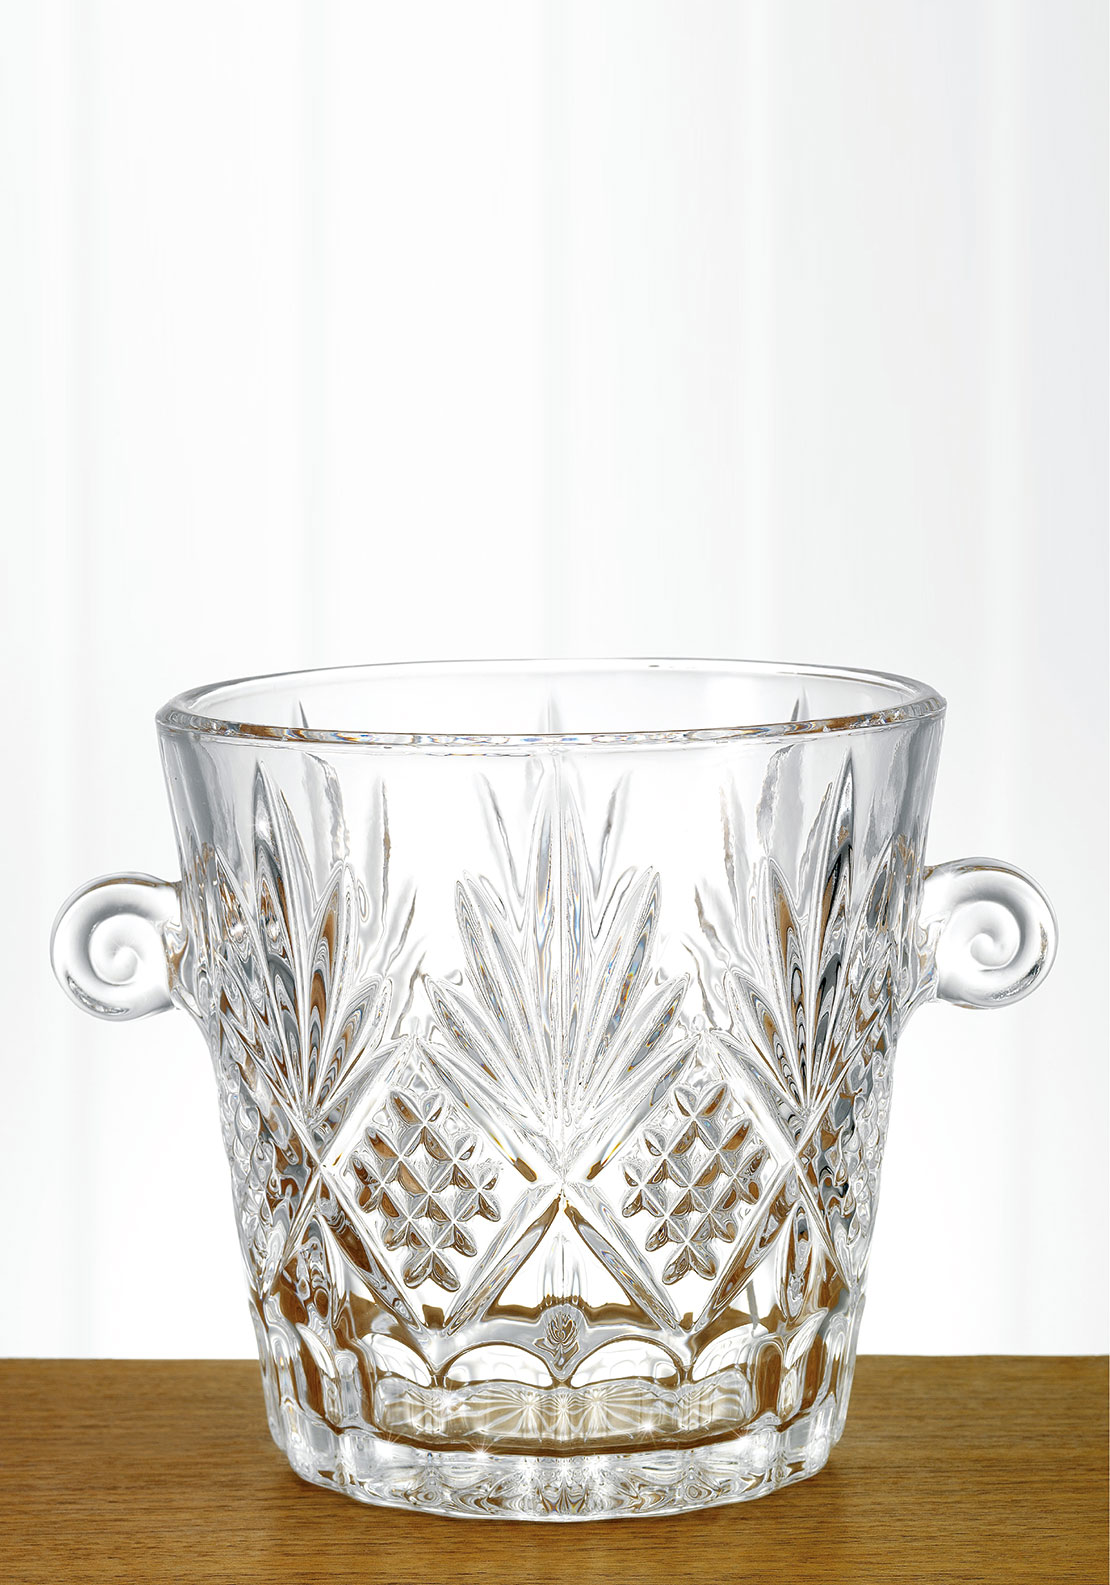 Killarney Crystal Trinity Ice Bucket